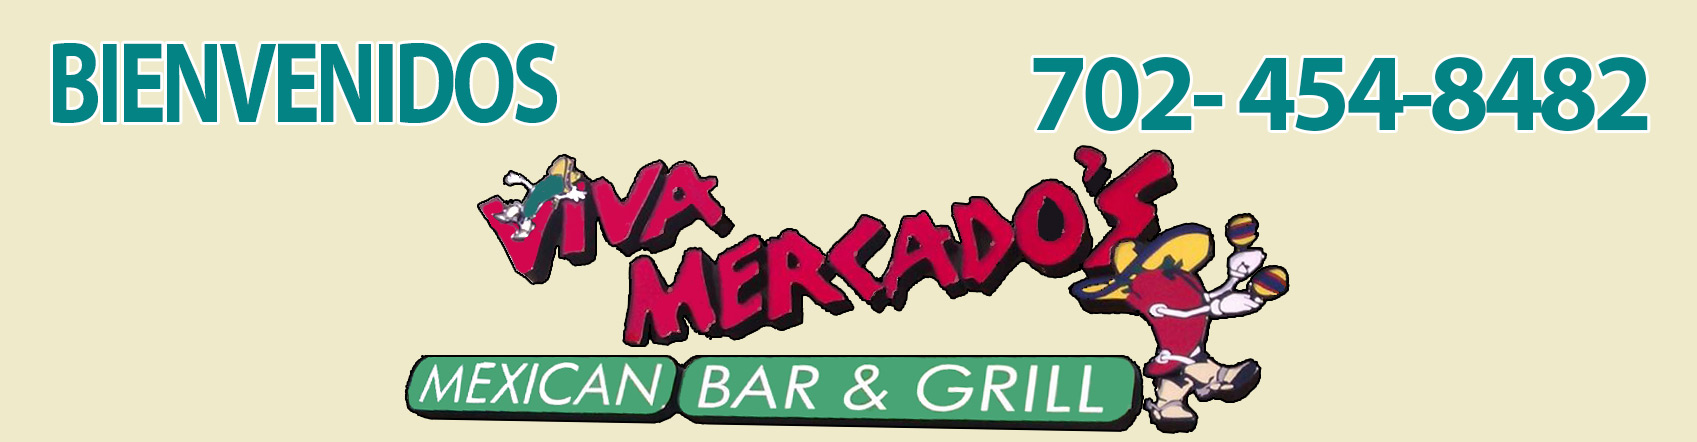 Viva Mercado's Mexican Bar & Grill